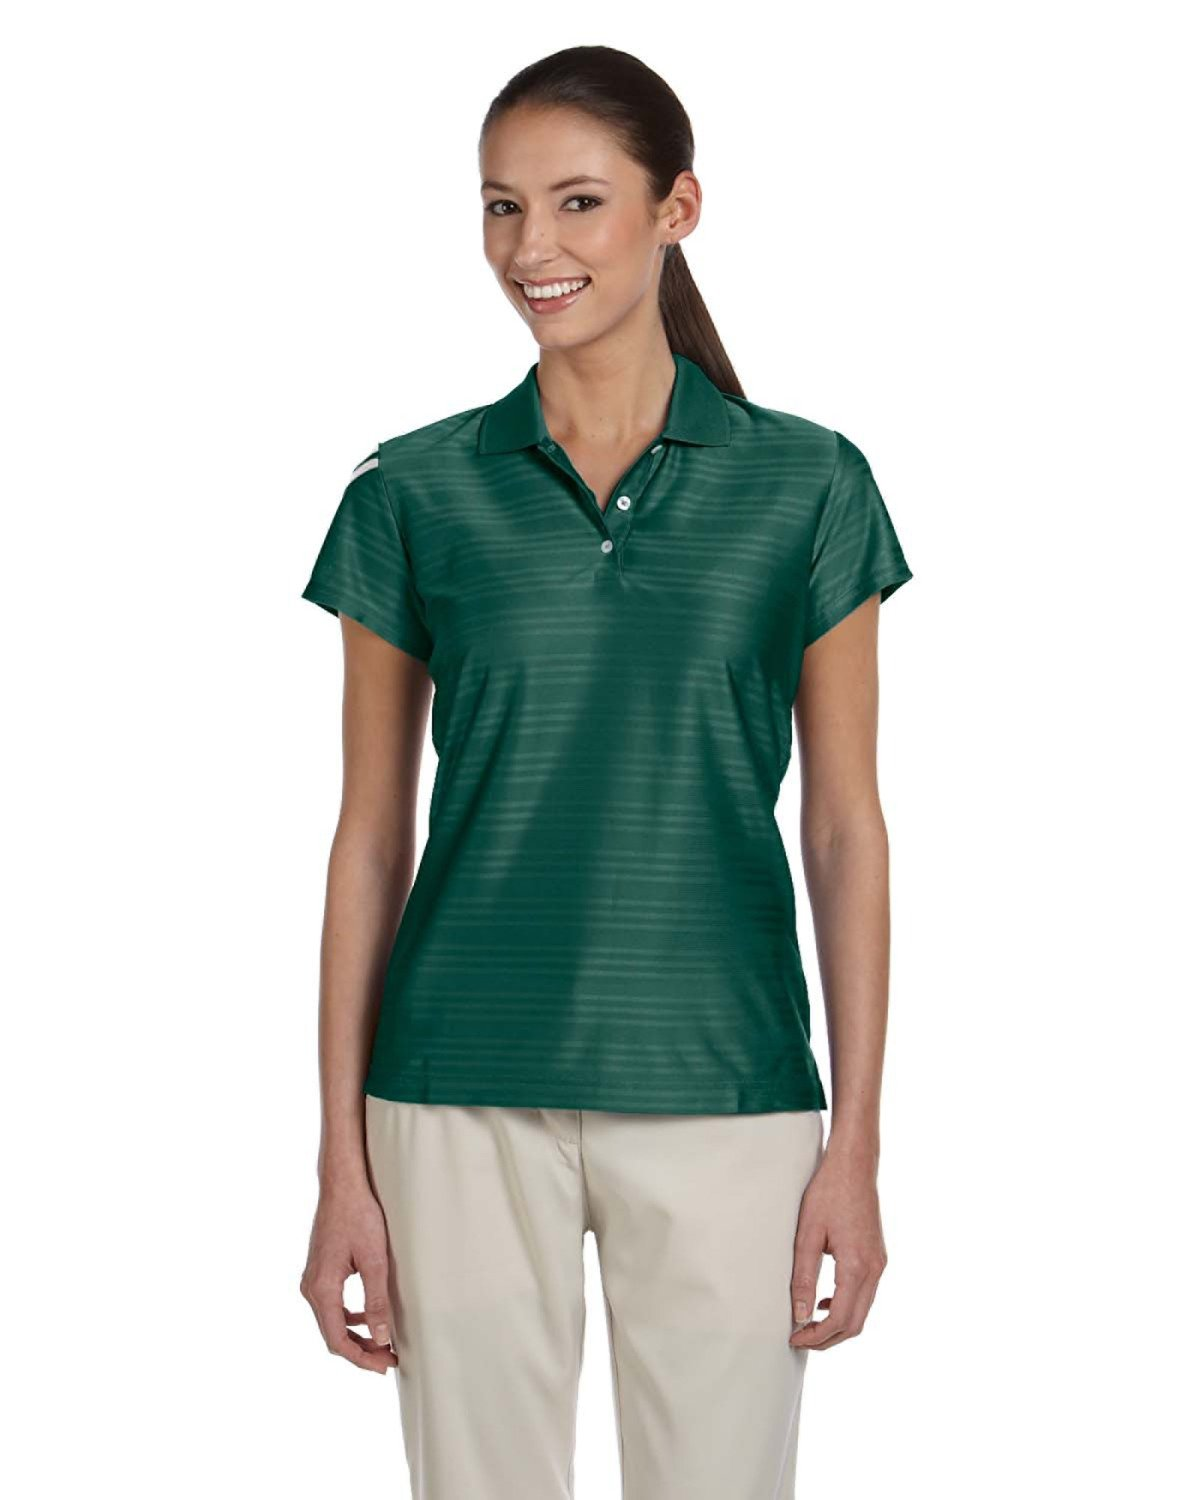 adidas Golf Womens Climacool Mesh Polo (A135) -Forest/WHI -S